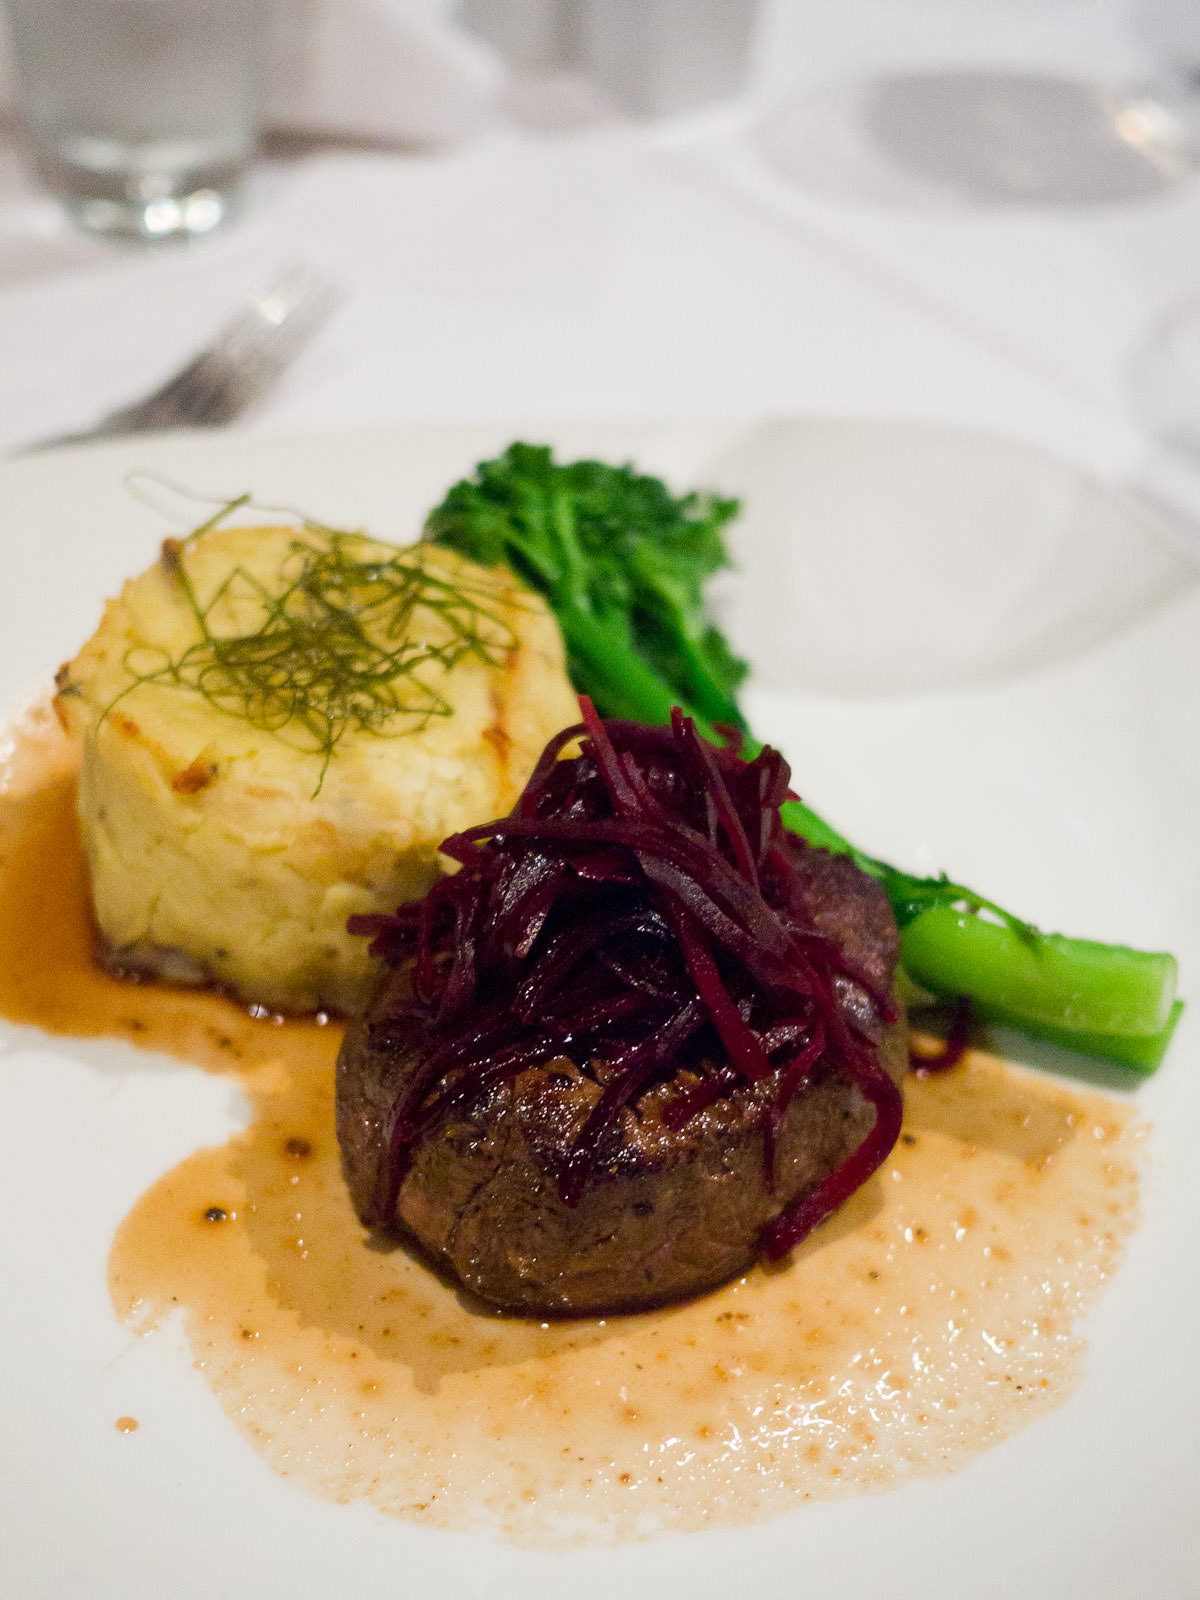 250g eye fillet with cabernet merlot jus, potato rösti scented with thyme, garlic buttered broccolini and beetroot pickles